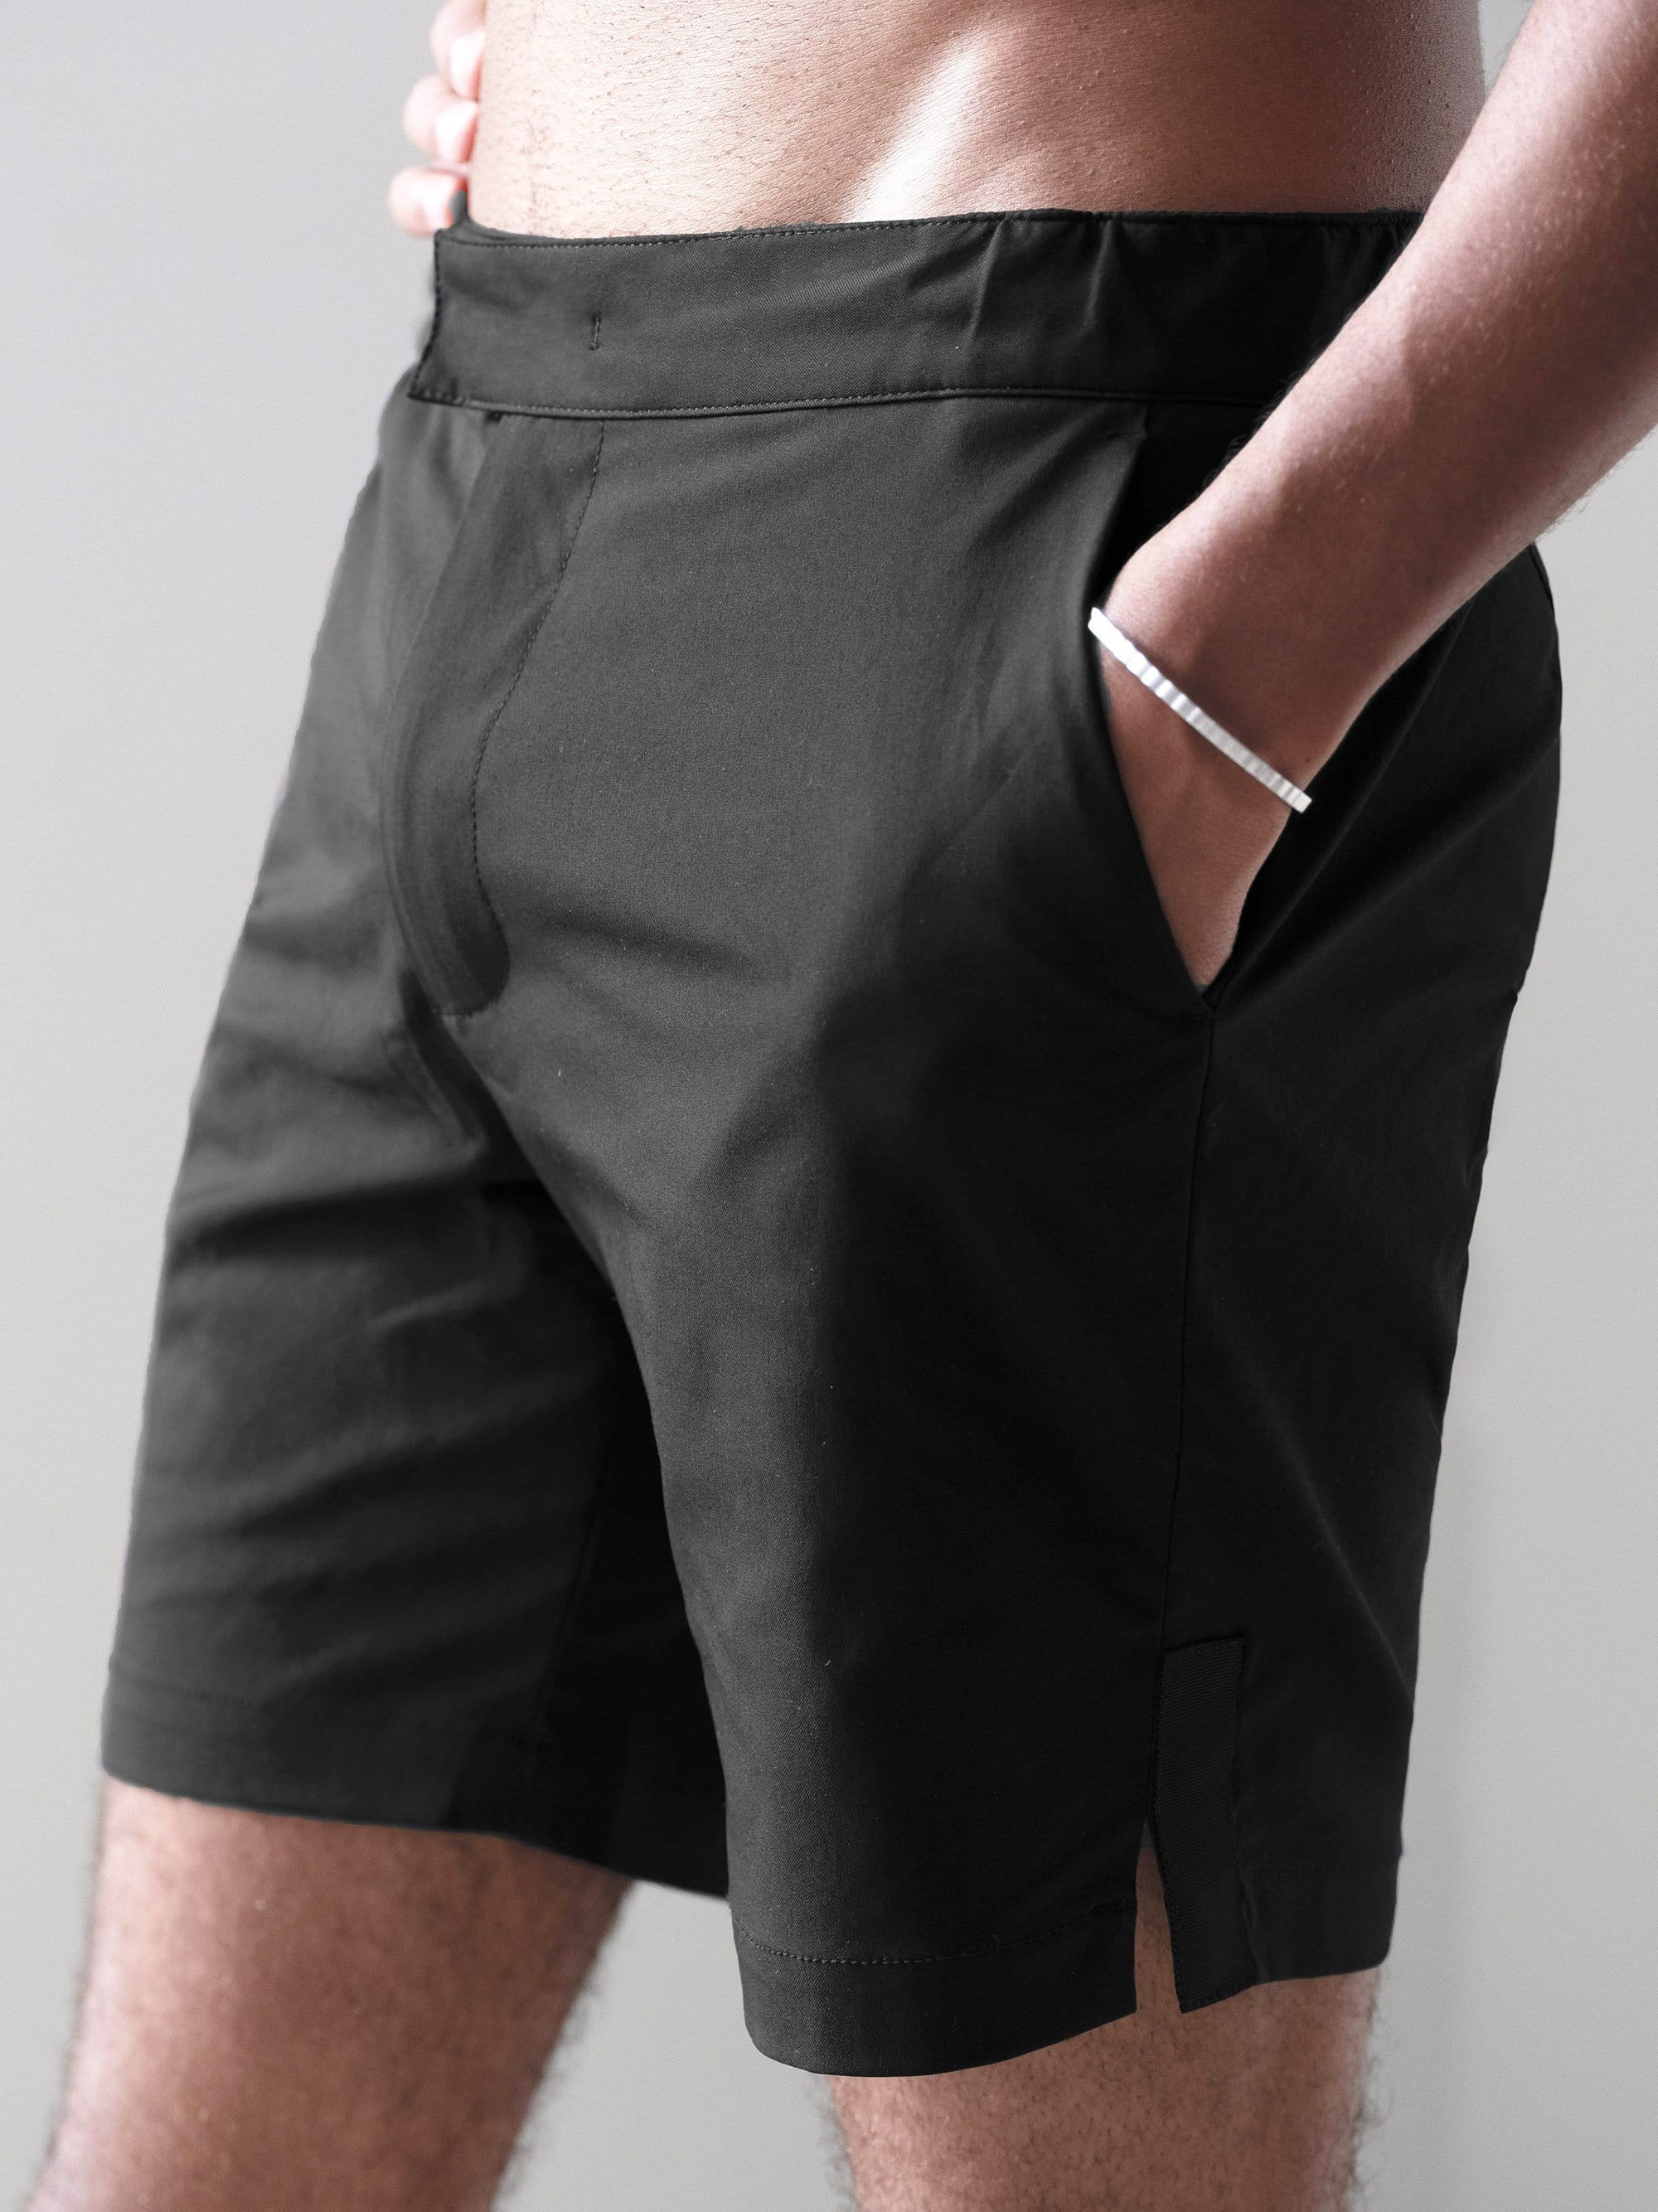 The Anywear Swim Short || Black | Recycled nylon with netting